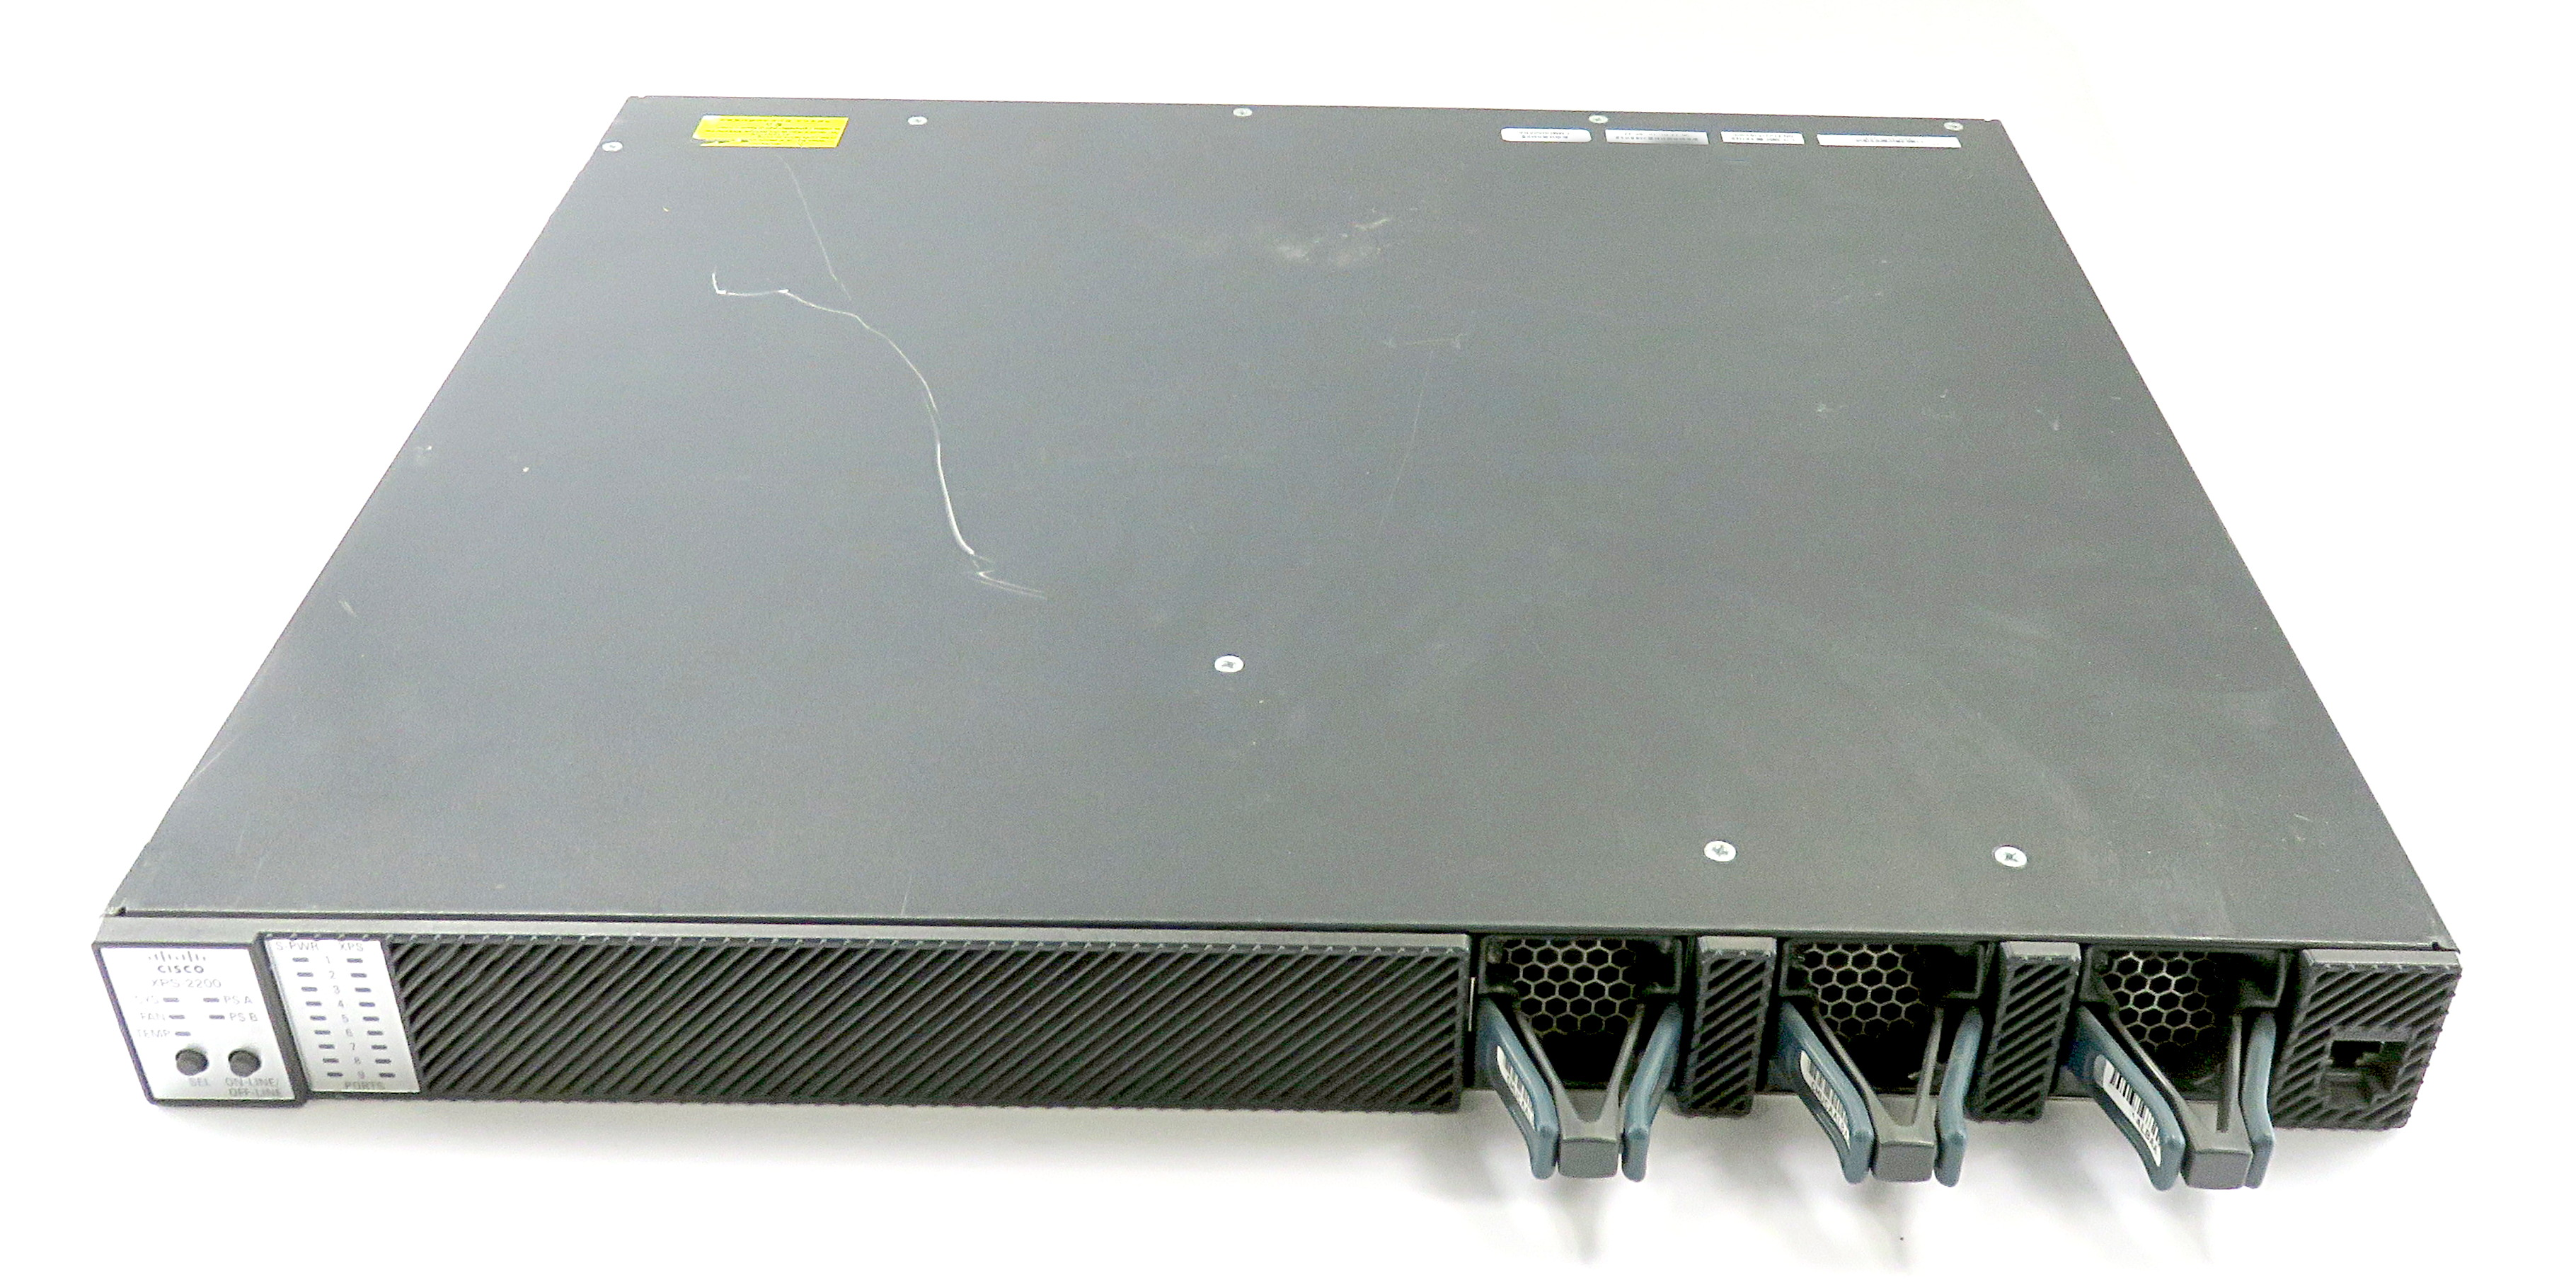 Cisco XPS-2200 1U Rack Mount Expandable Redundant Power System TNY-XPS-2200